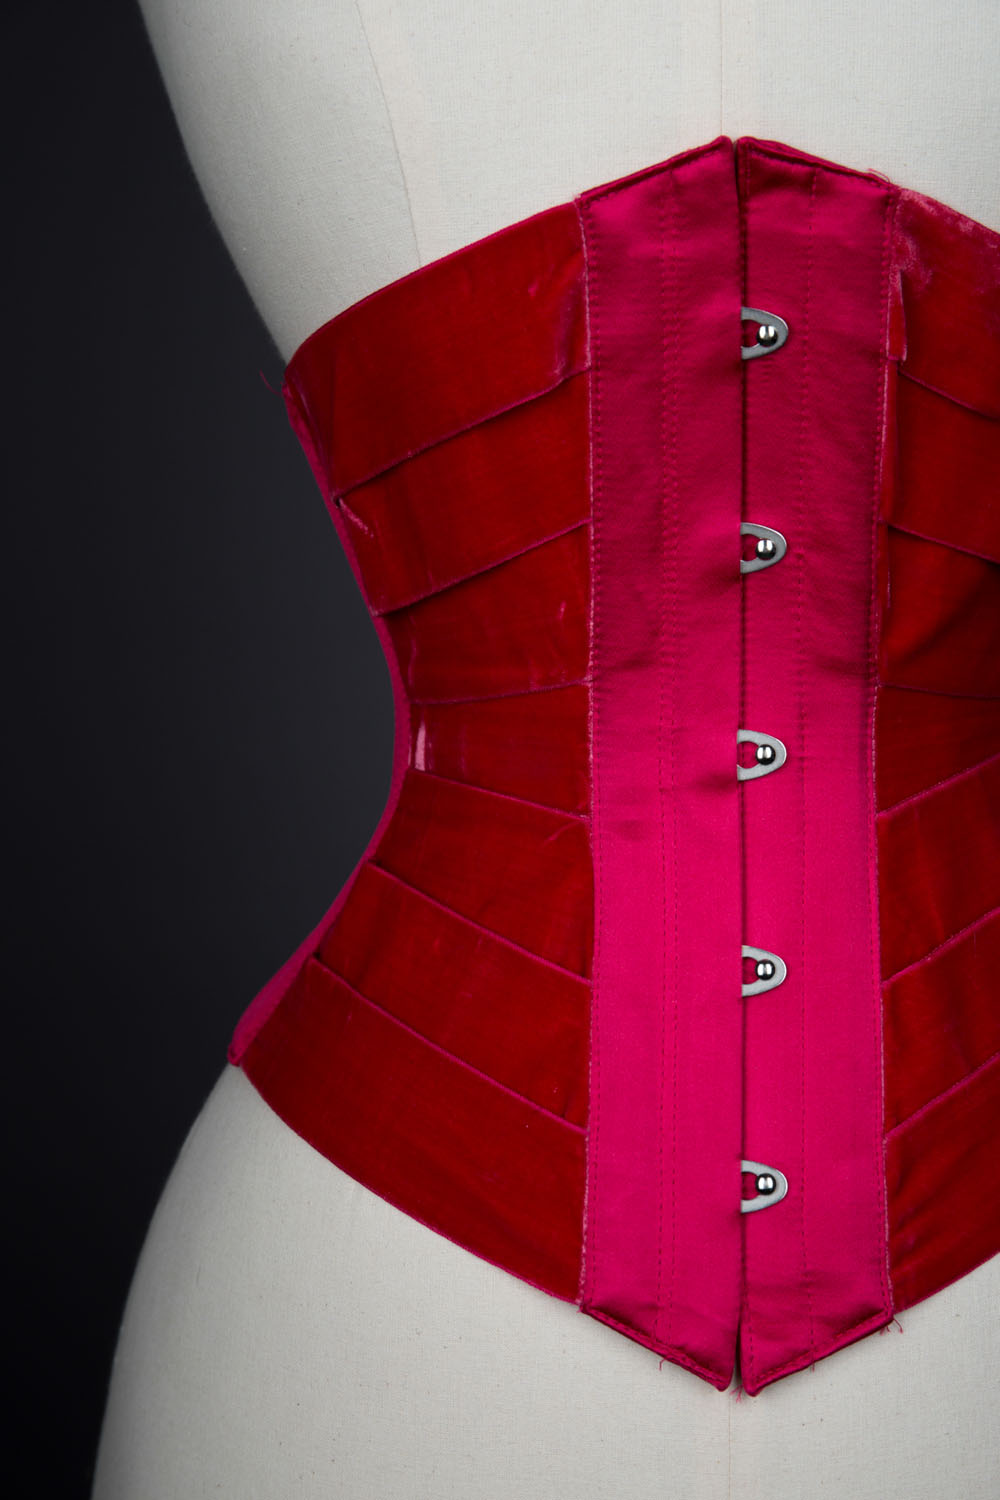 'Vixen' velvet ribbon corset by Pop Antique. The Underpinnings Museum. Photography by Tigz Rice